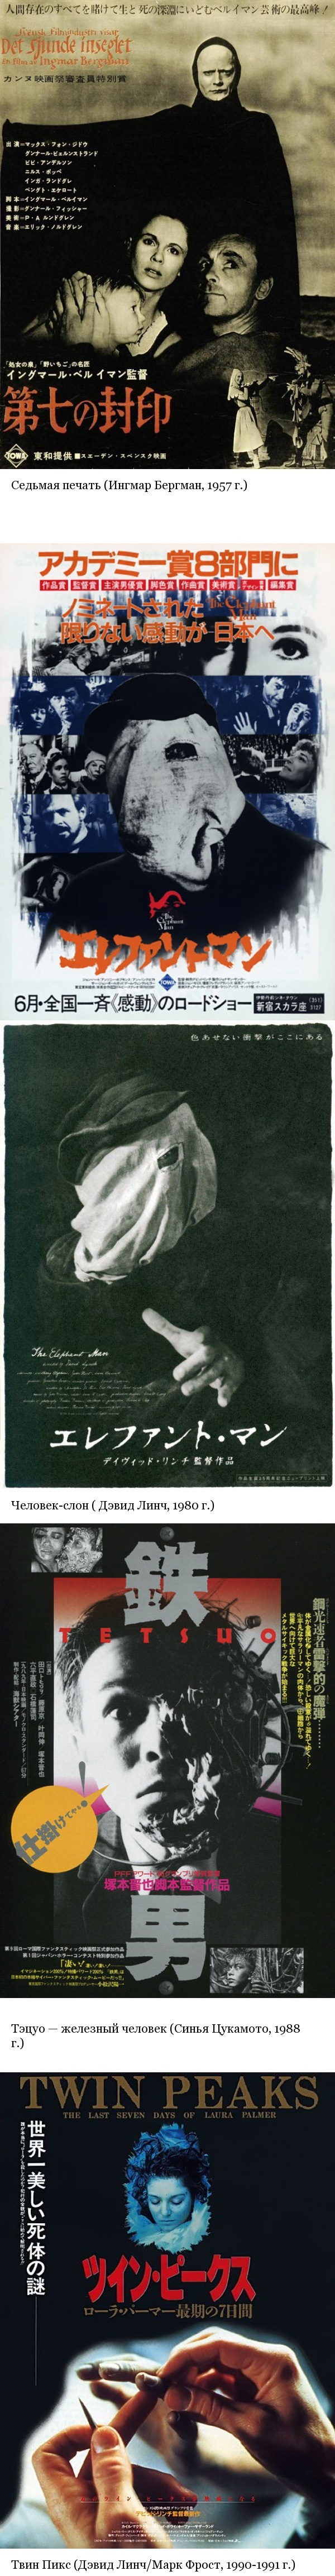 japanese_movie_posters